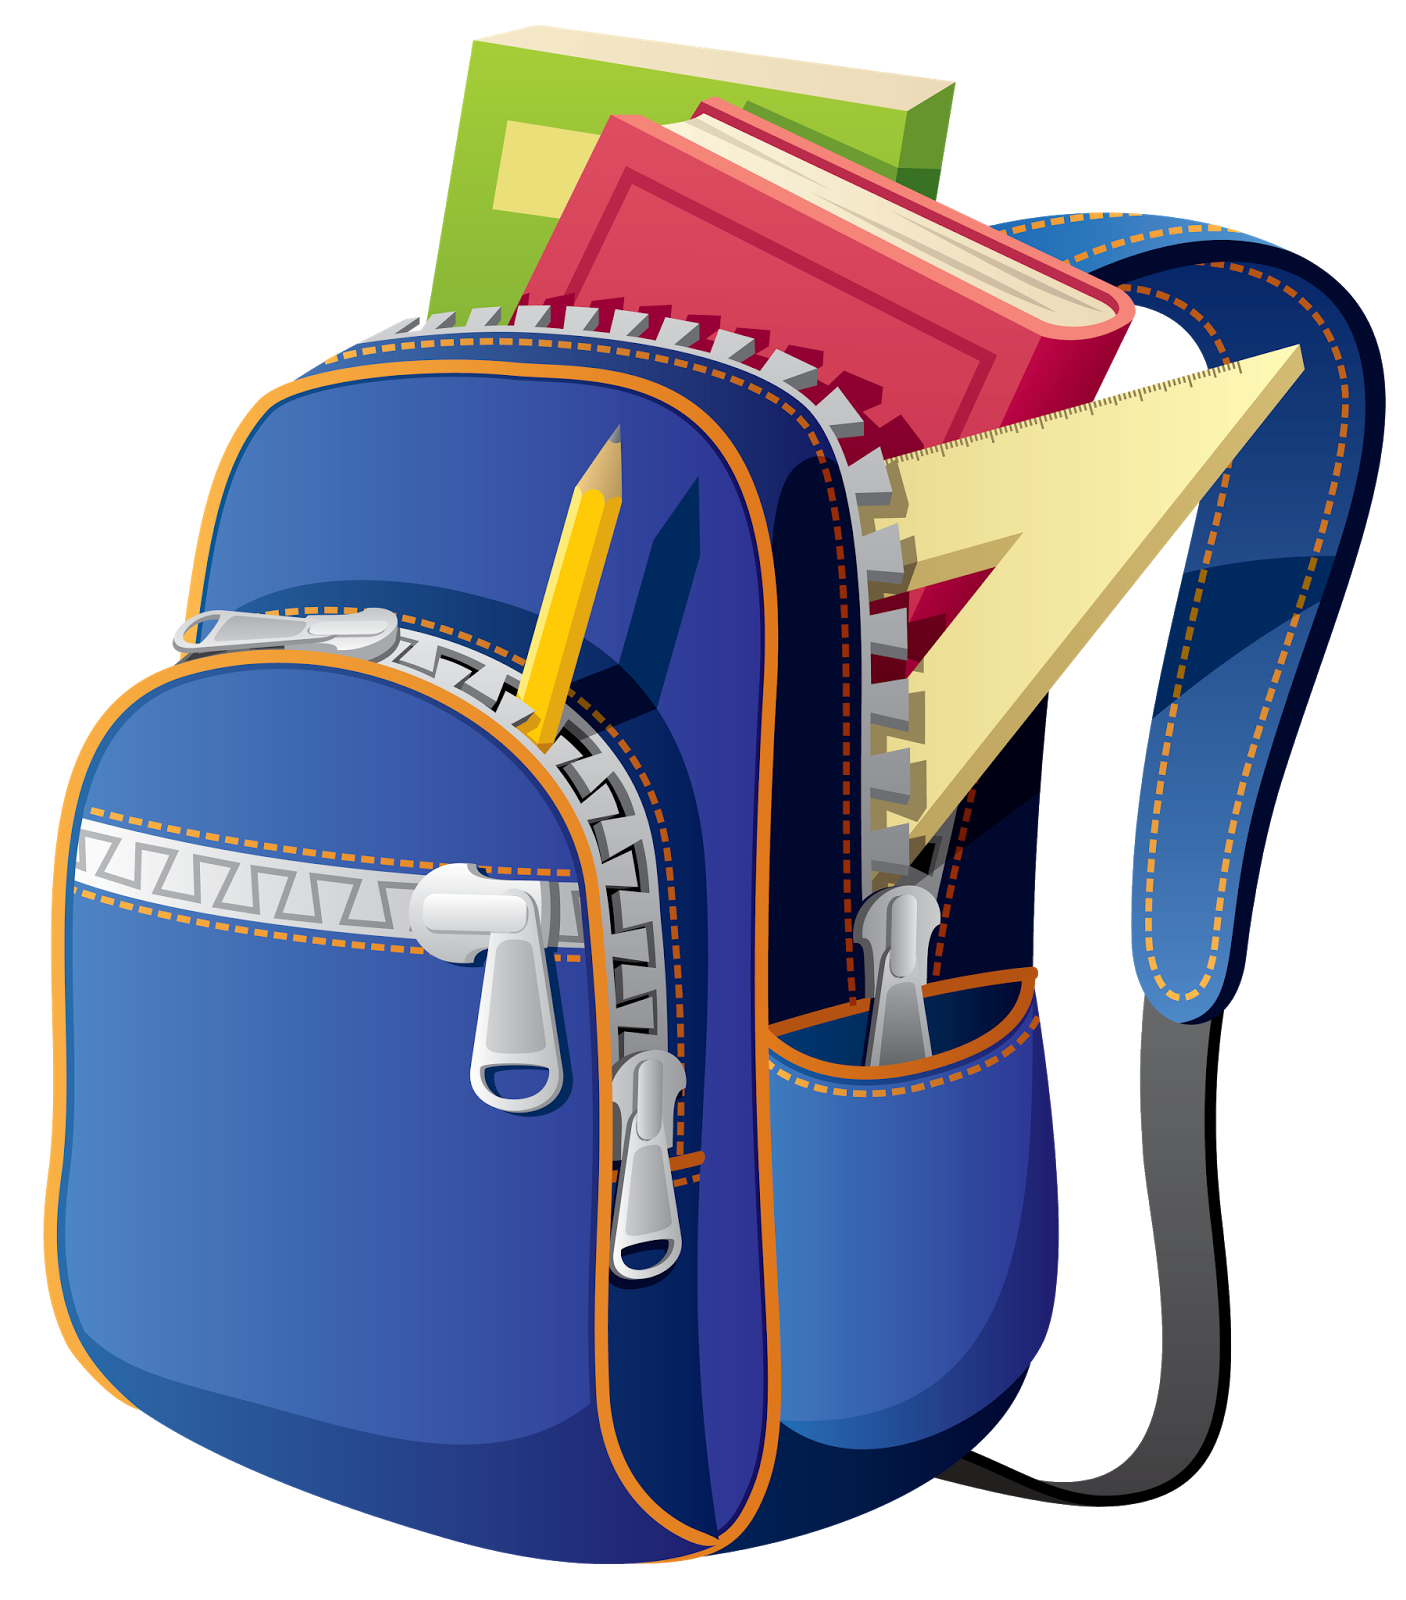 School bags clipart graphic free download Backpack School Bag Clip art - backpack 1406*1600 transprent Png ... graphic free download